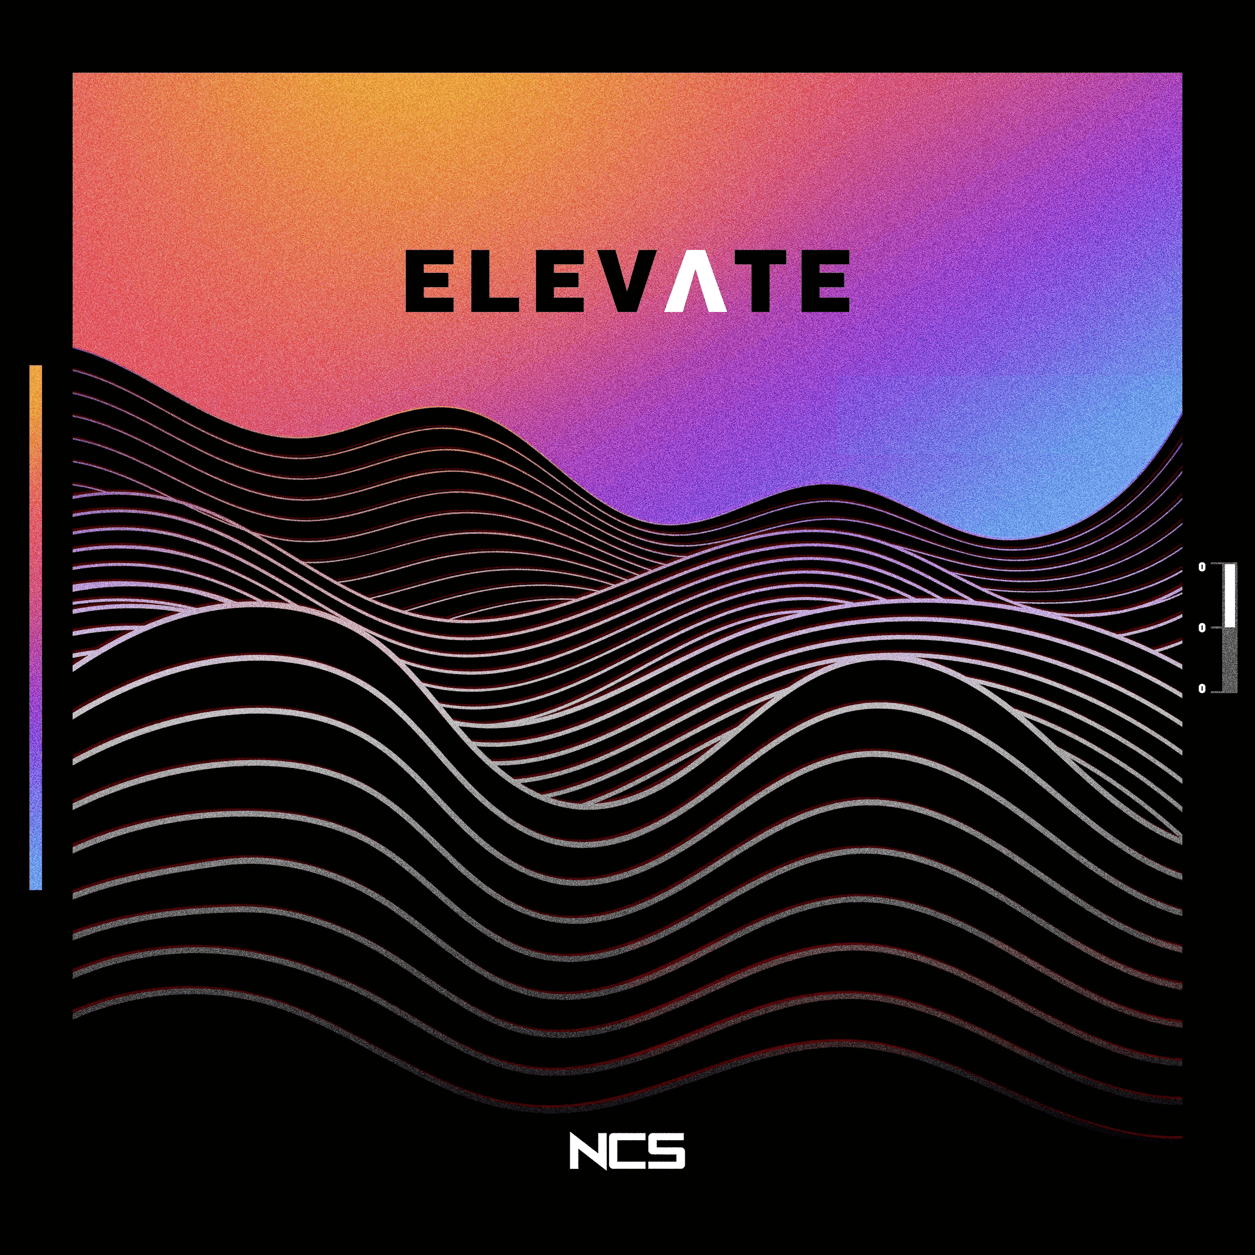 20 million subscriber indie label NCS release album Elevate